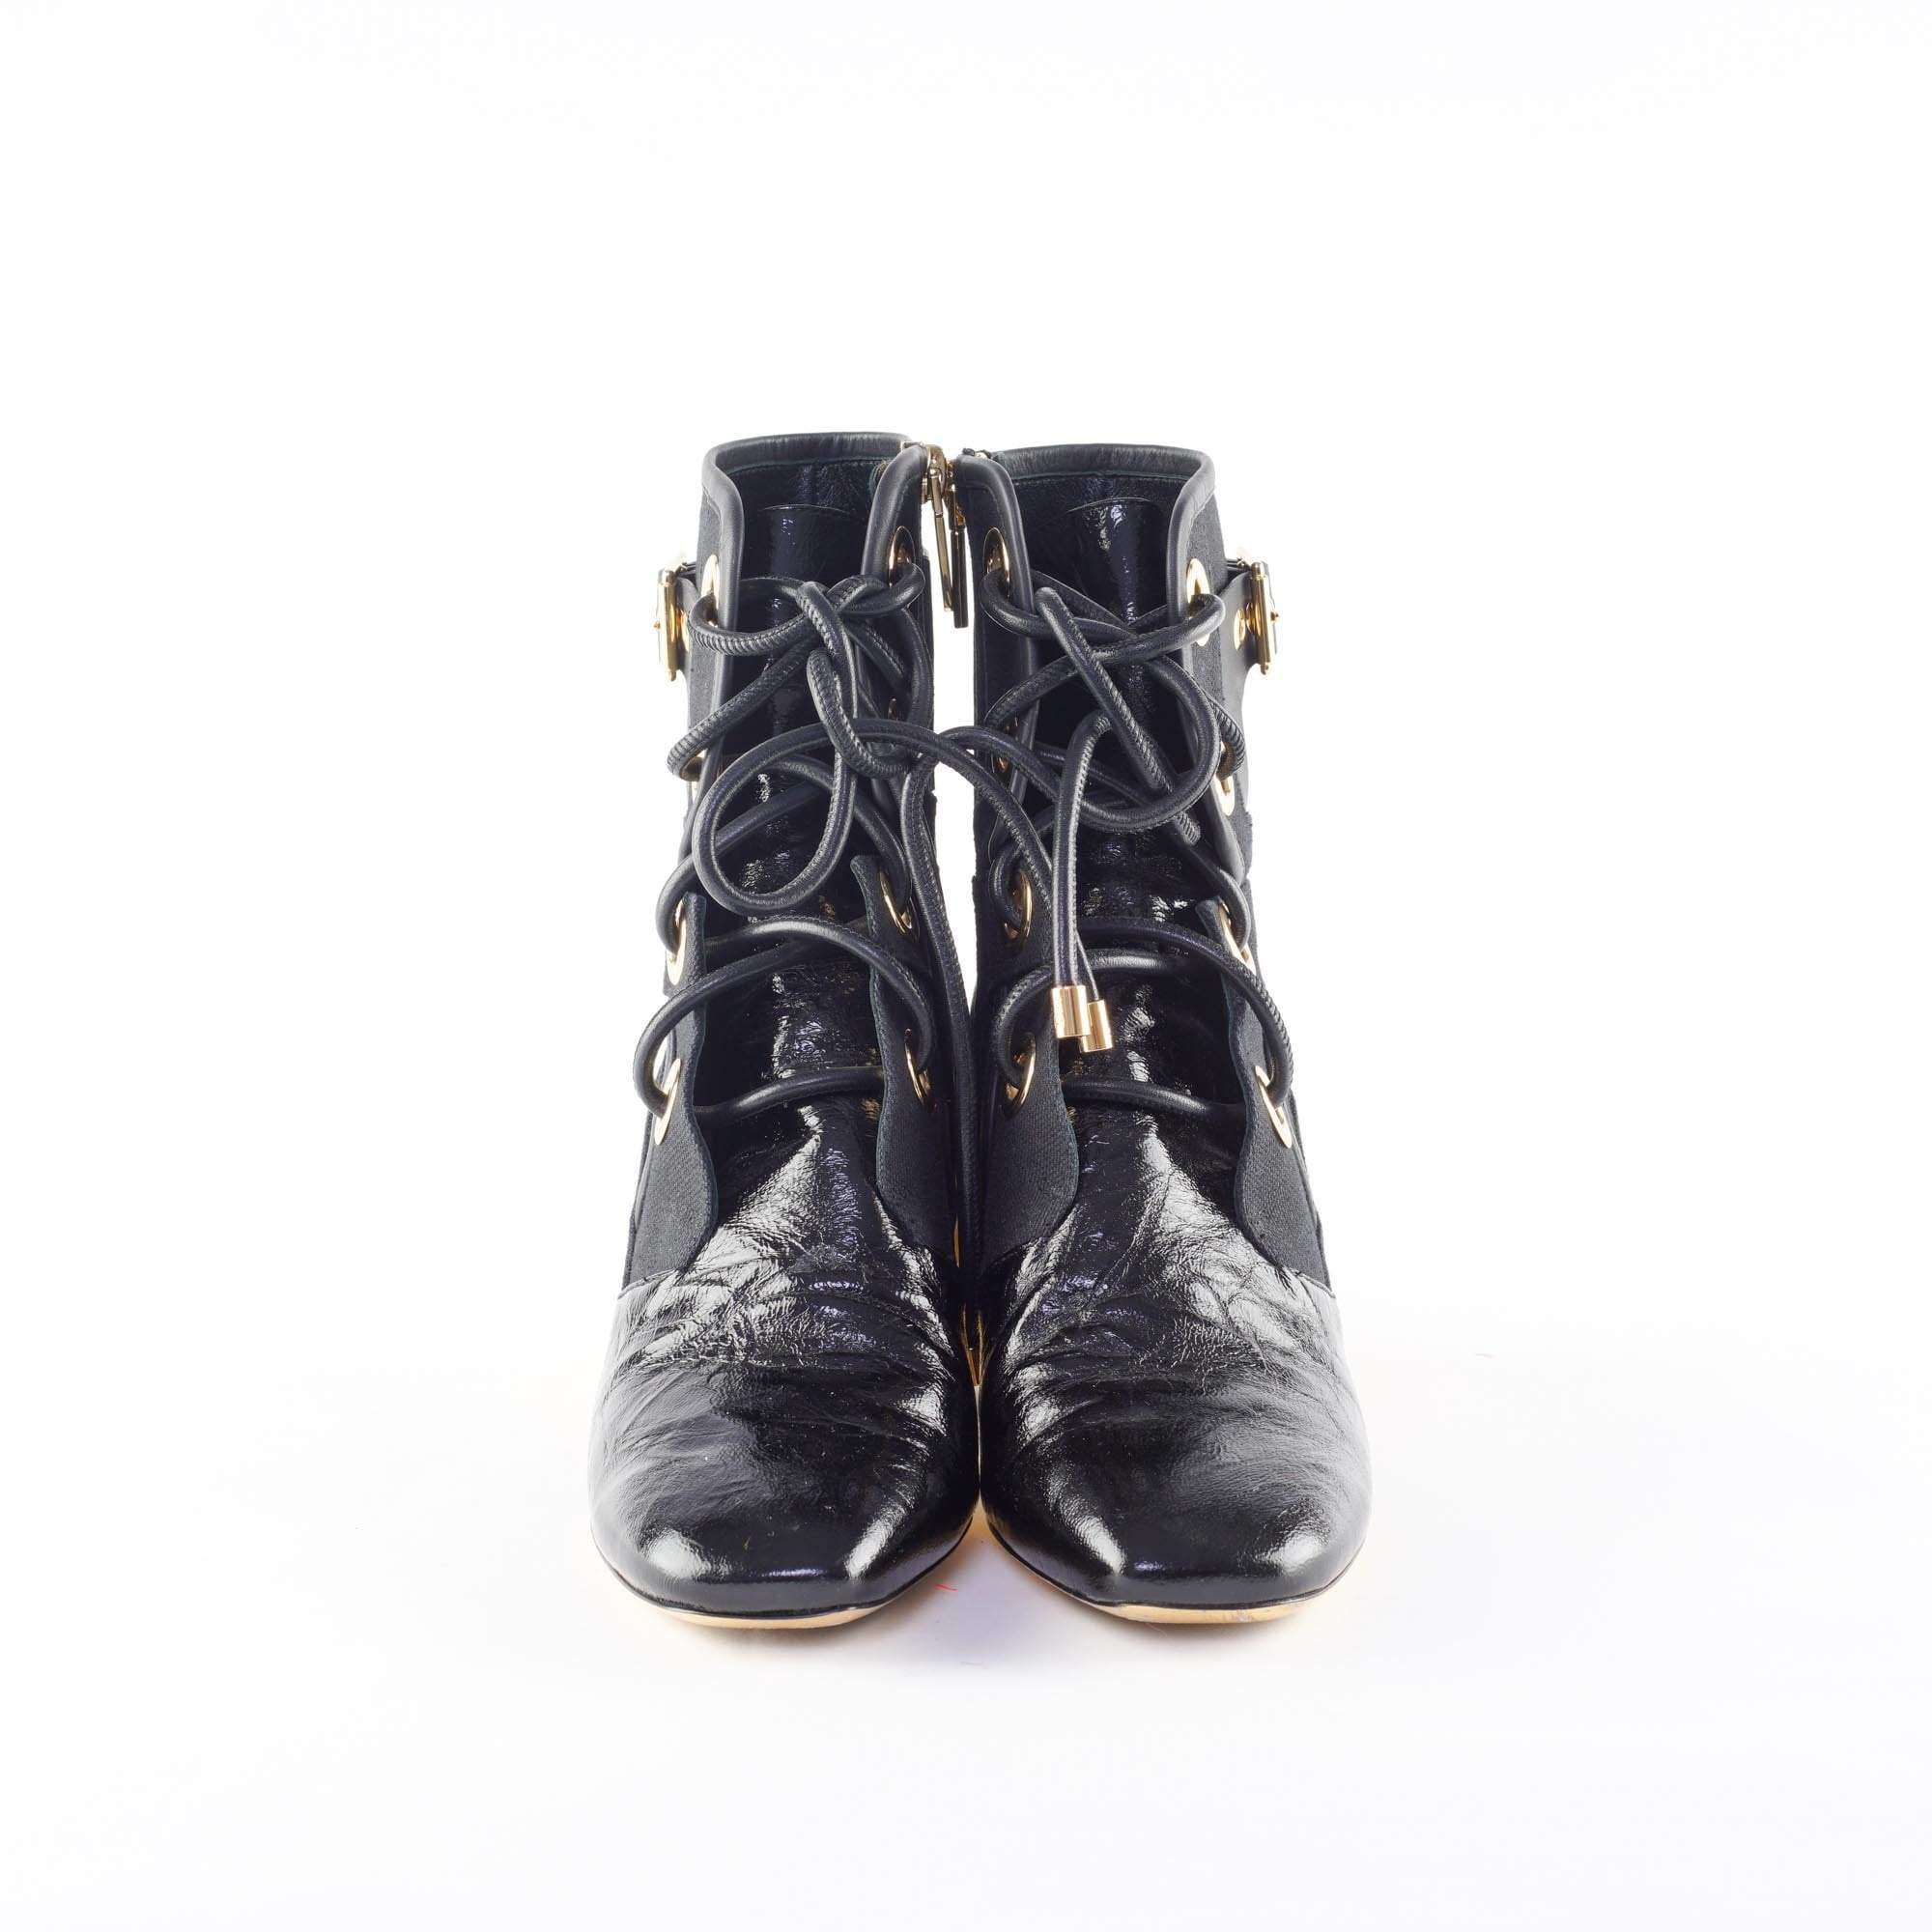 Christian Dior Black Glazed Calfskin Ankle Boot